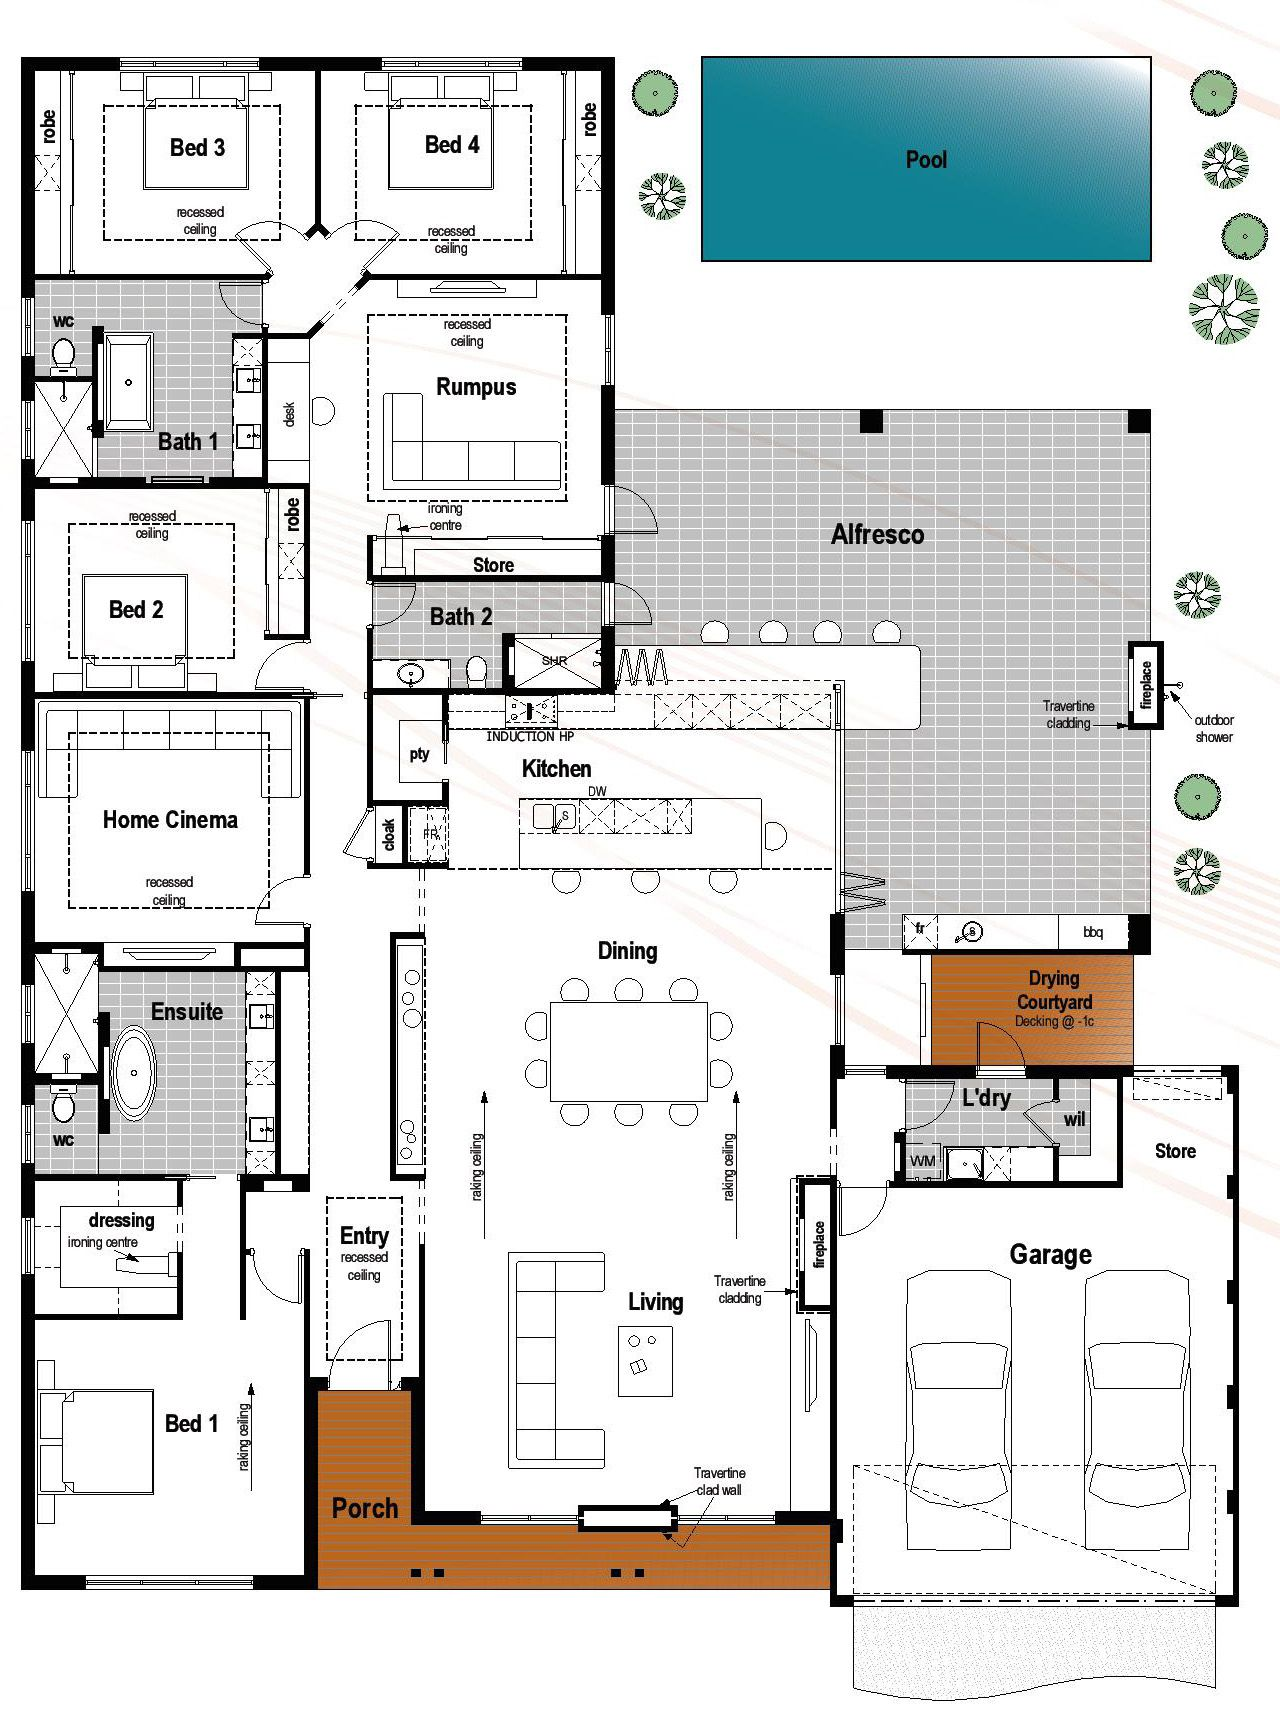 Floor Plan Friday 4 Bedroom 3 Bathroom With Modern Skillion Roof House Layouts House Plans House Floor Plans